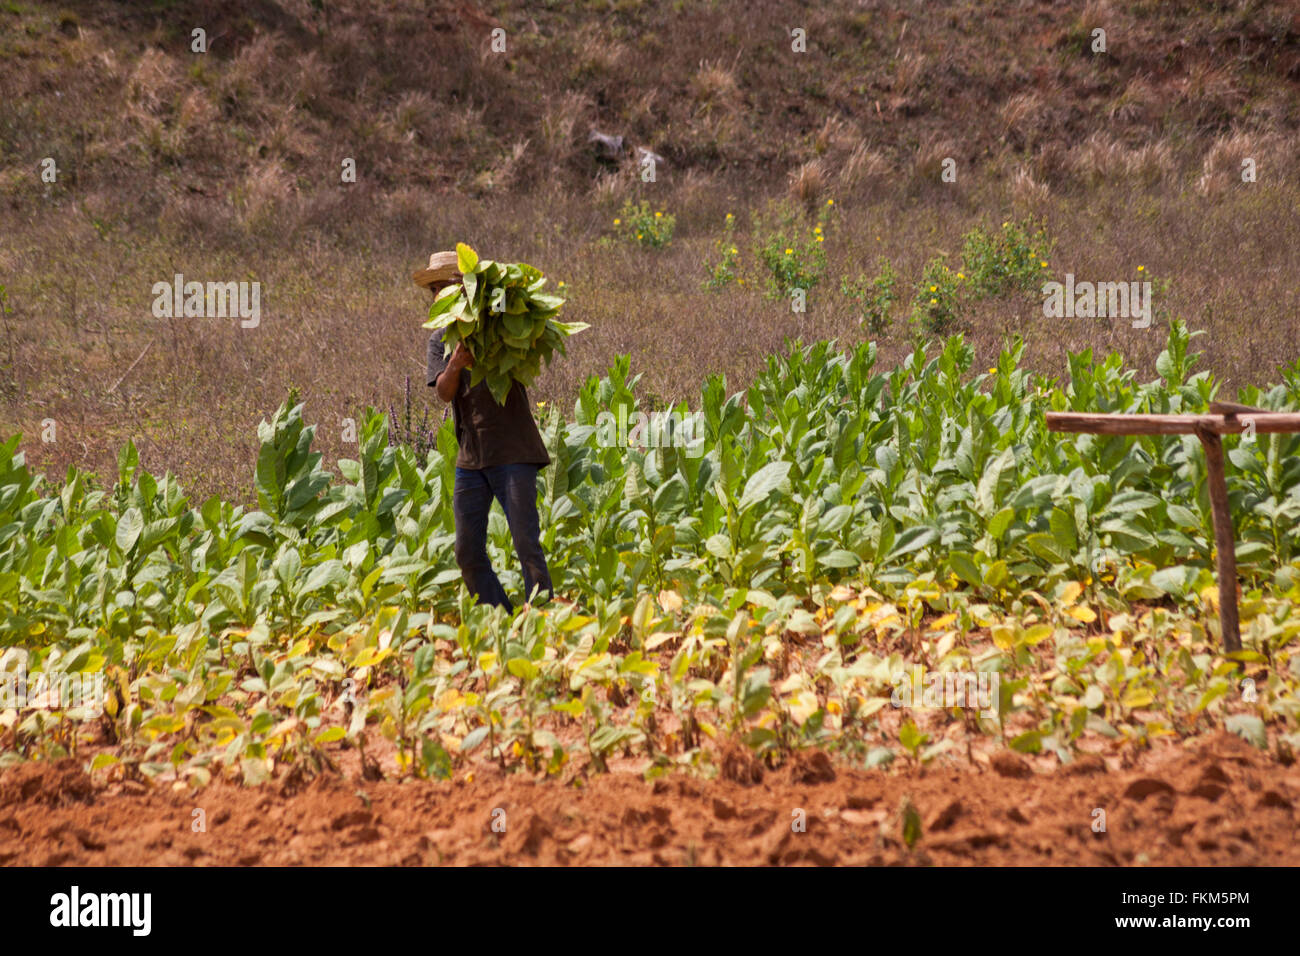 Daily life in Cuba - Picking tobacco leaves at Vinales, Pinar del Rio Province, Cuba, West Indies - Stock Image